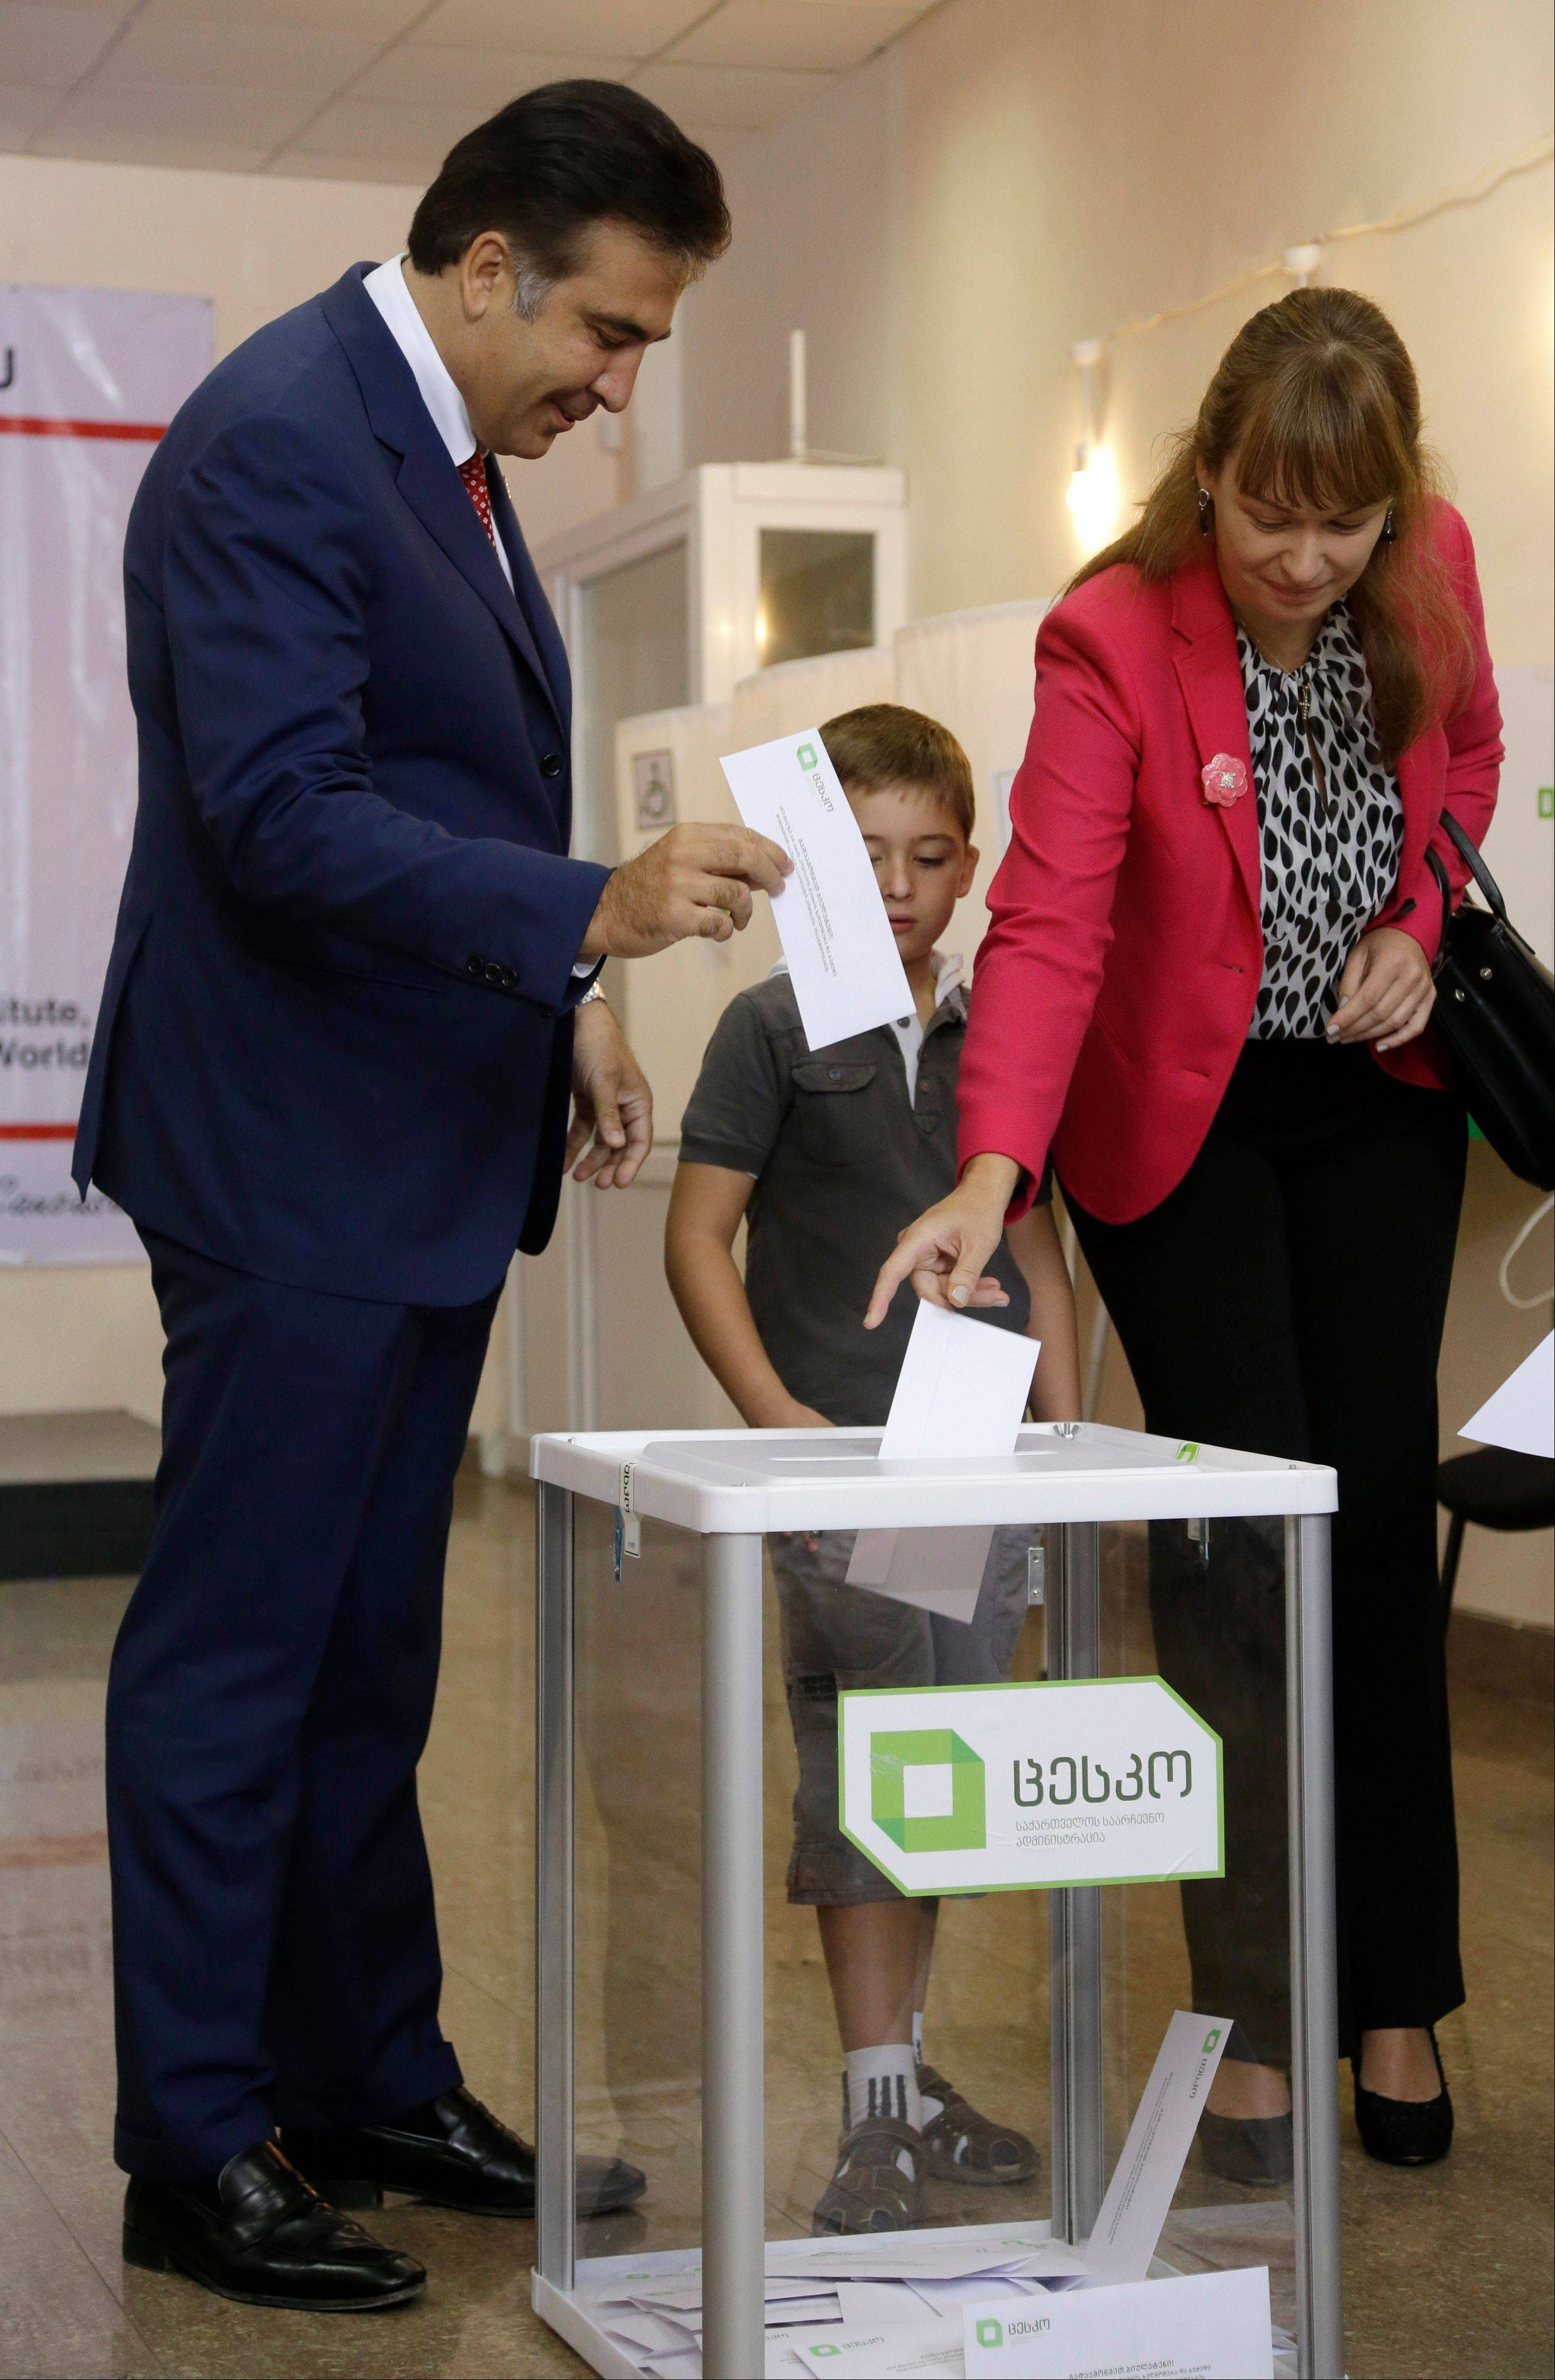 Georgian President Mikhail Saakashvili, left, and his wife, Sandra Roelofs cast their ballots as their son Nikoloz stands beside them at a polling station in Tbilisi, Georgia, Monday. Voters in Georgia are choosing a new parliament in a heated election that will decide the future of Saakashvili�s government.